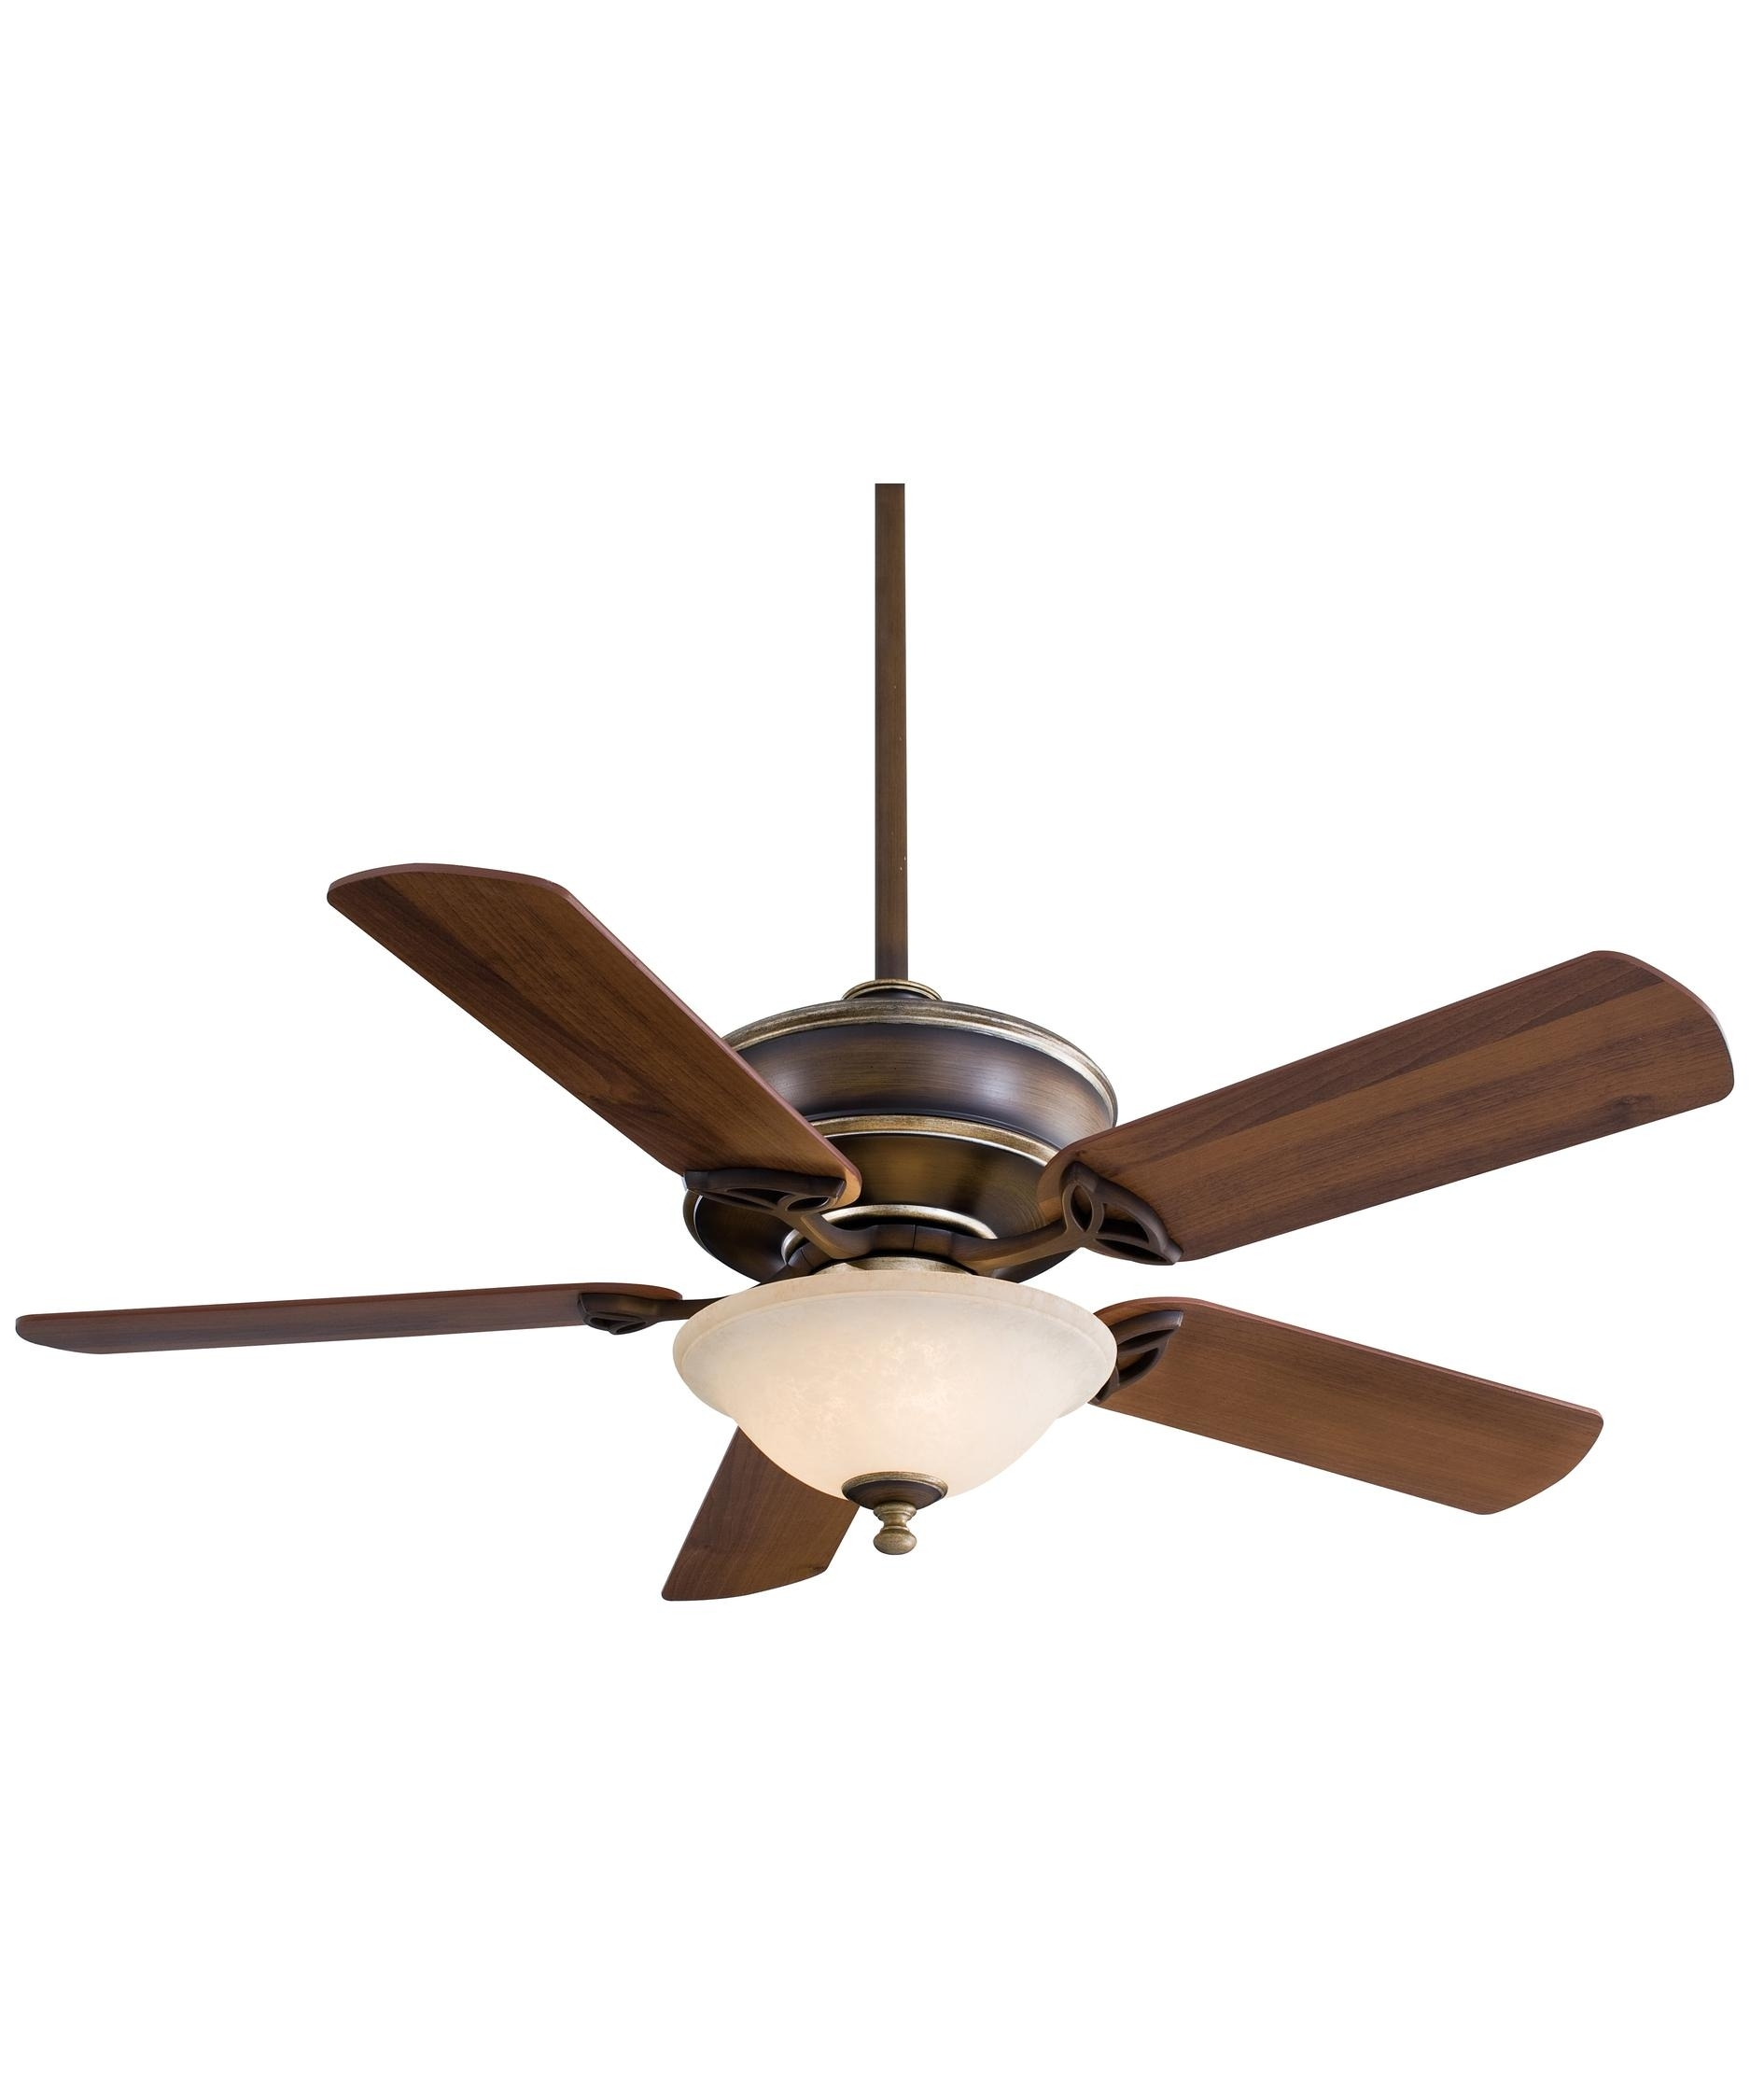 Ceiling Fans : Portable Ceiling Fan Hampton Bay Replacement Parts Inside Outdoor Ceiling Fans With Copper Lights (#6 of 15)